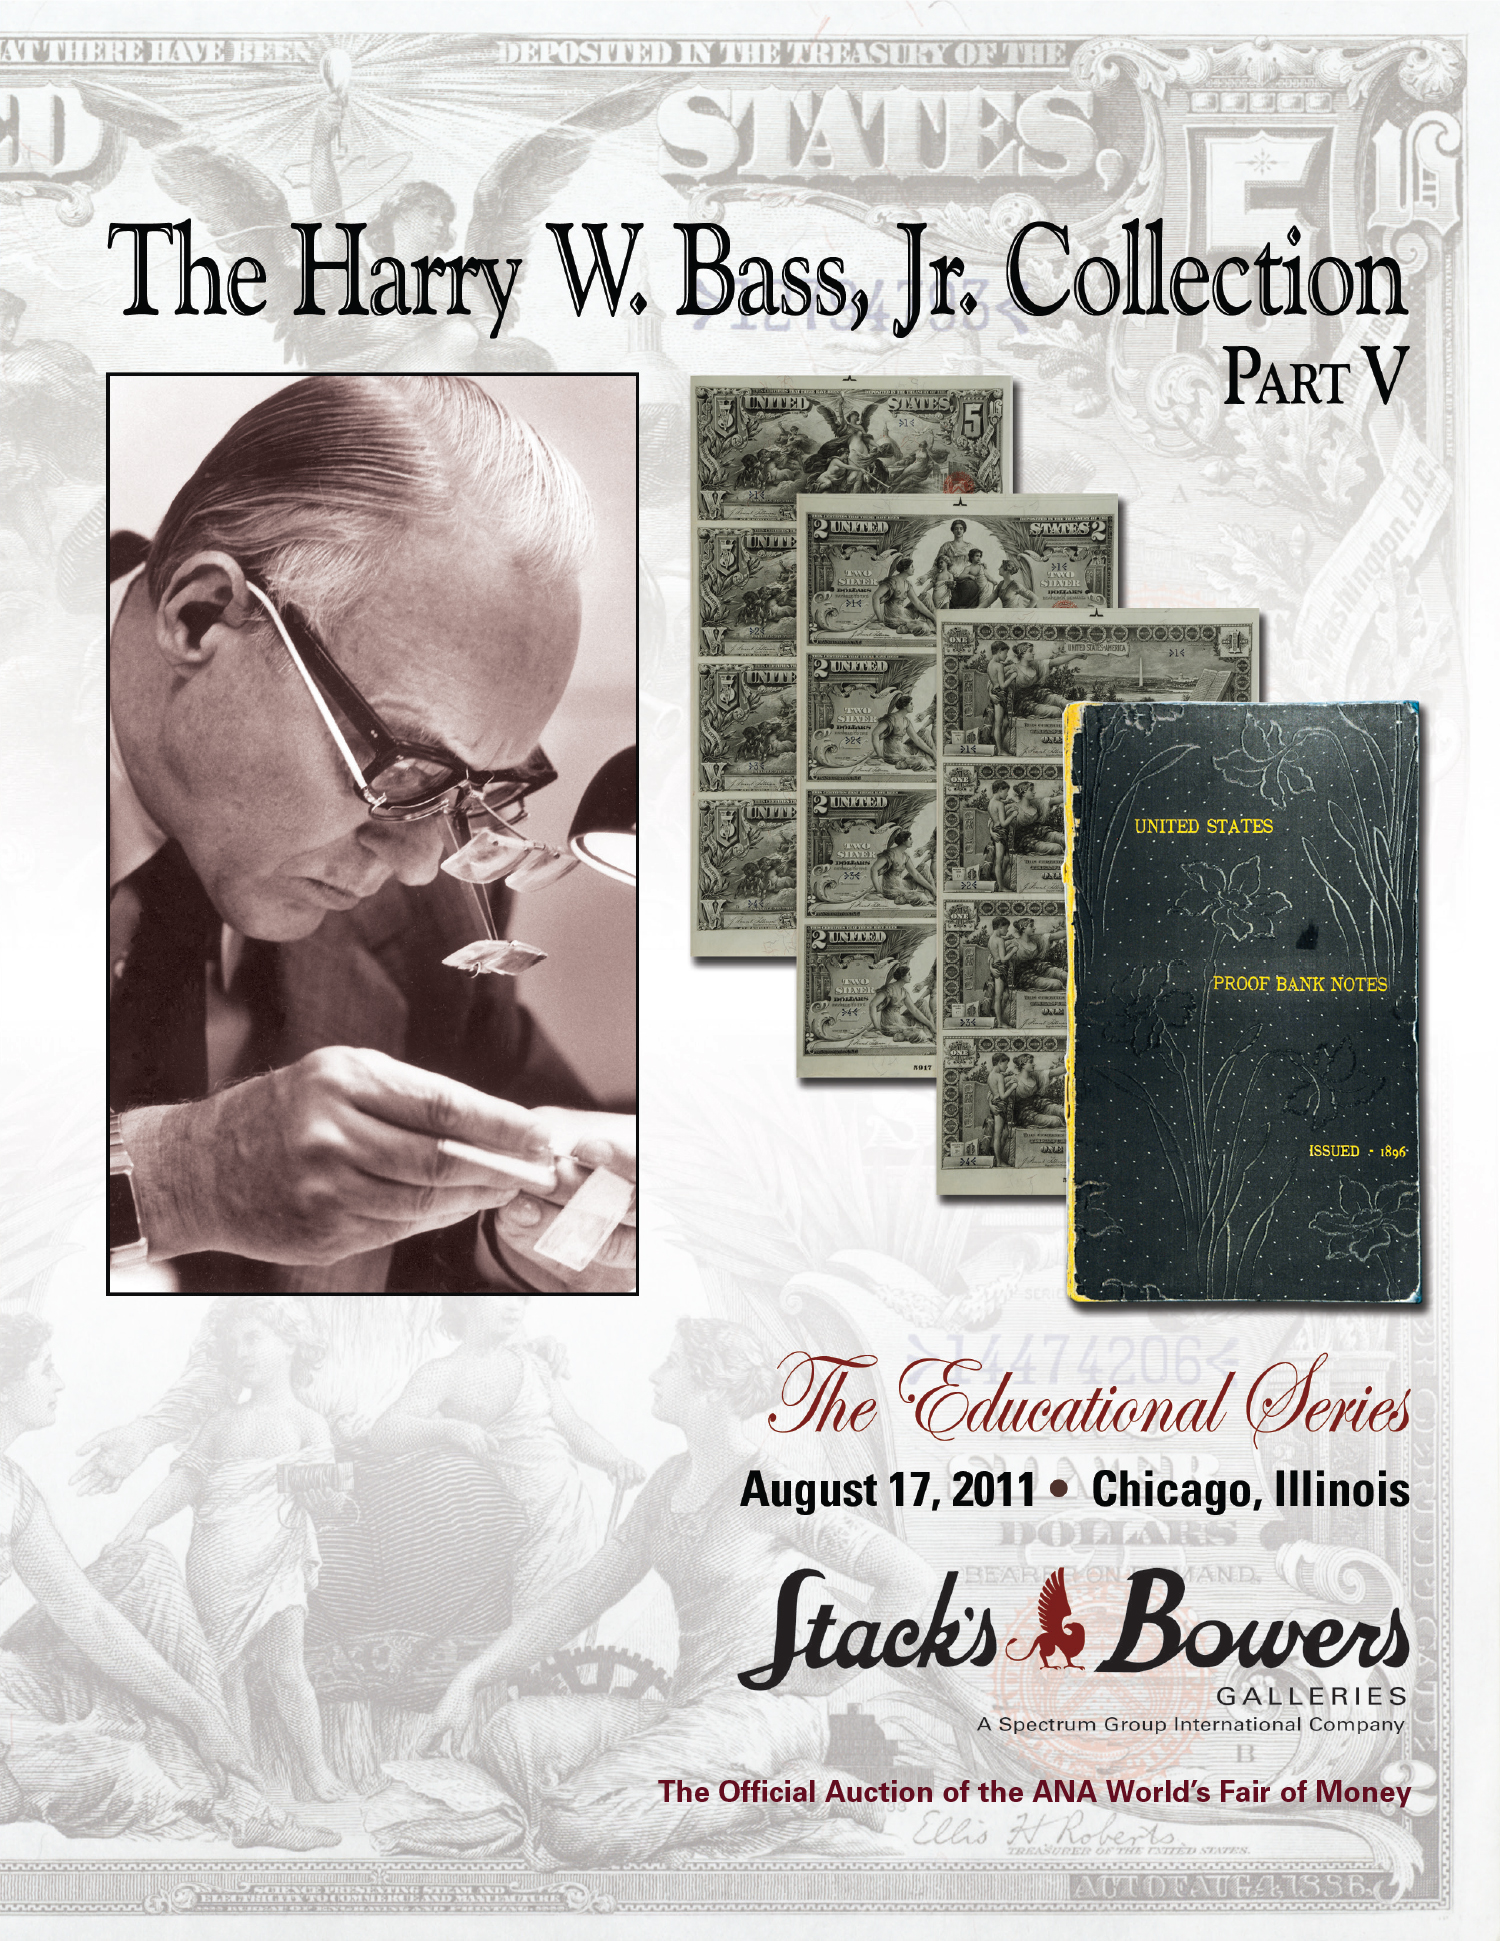 The Harry W. Bass, Jr. Collection, Part V, The Educational Series